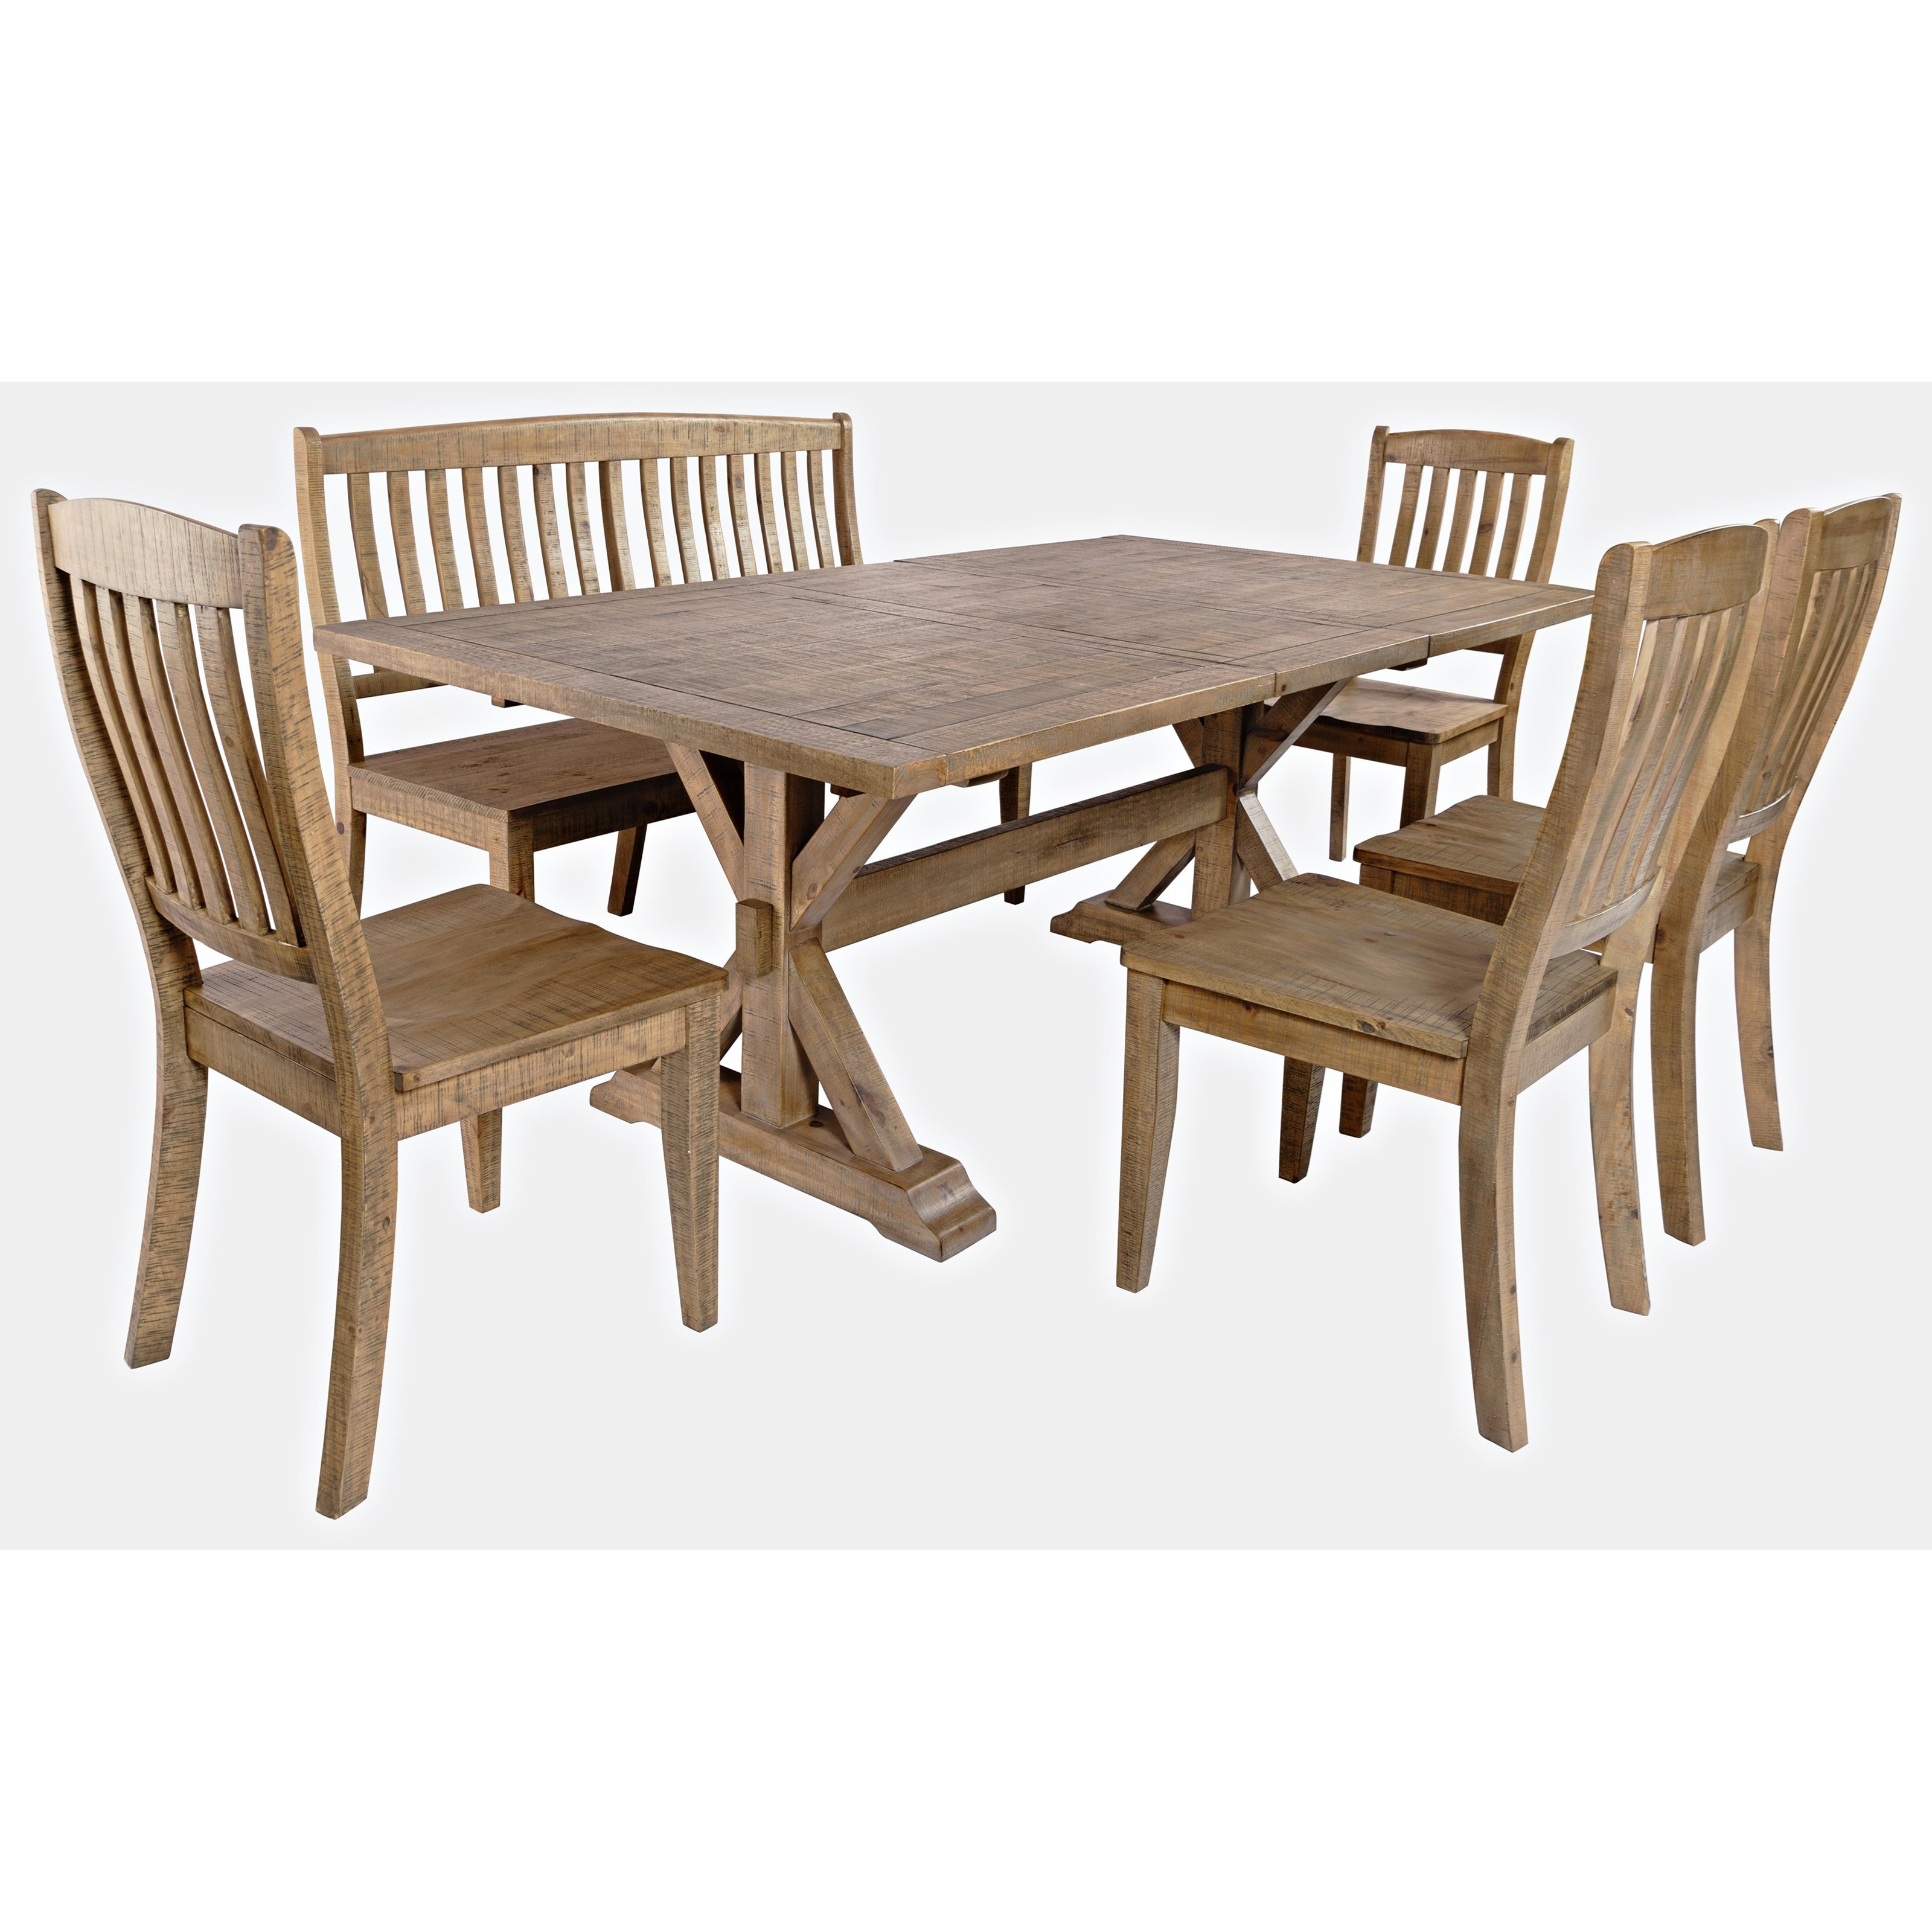 Carlyle Crossing 6-Piece Dining Table and Chair Set by Jofran at Jofran